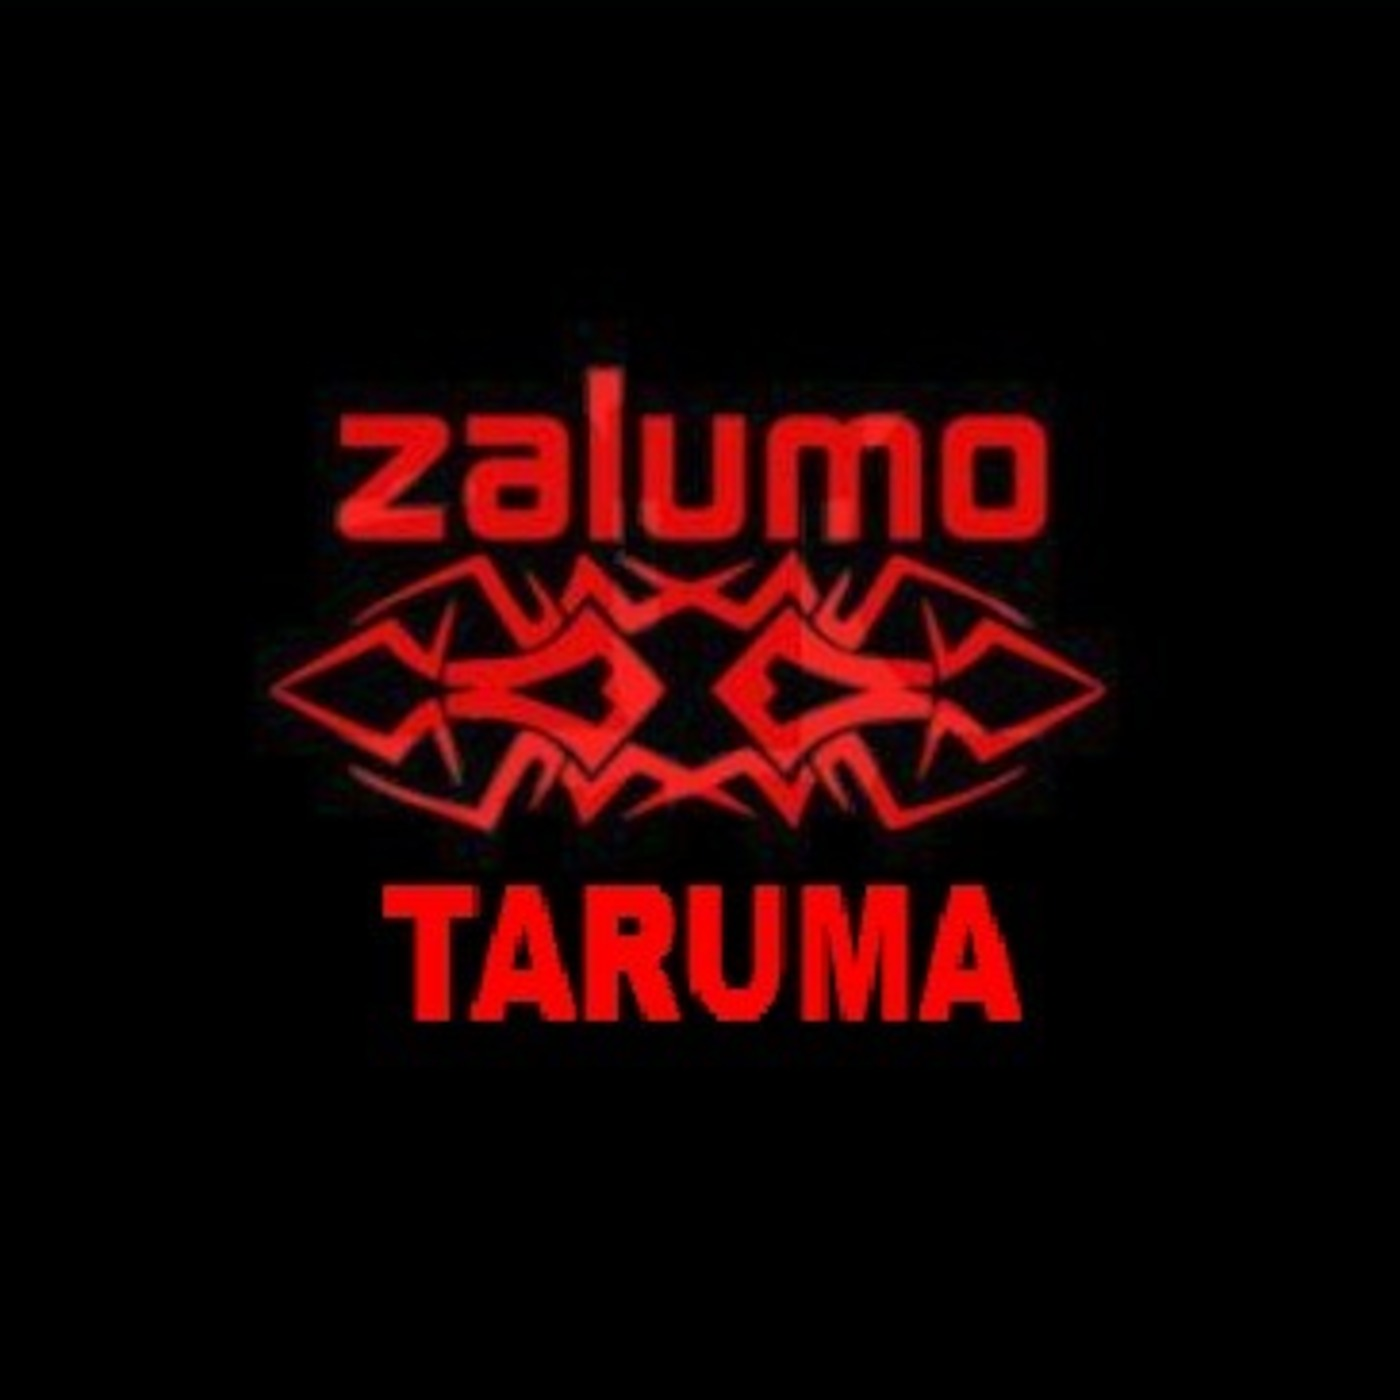 Taruma & Zalumo dubstep podcast!